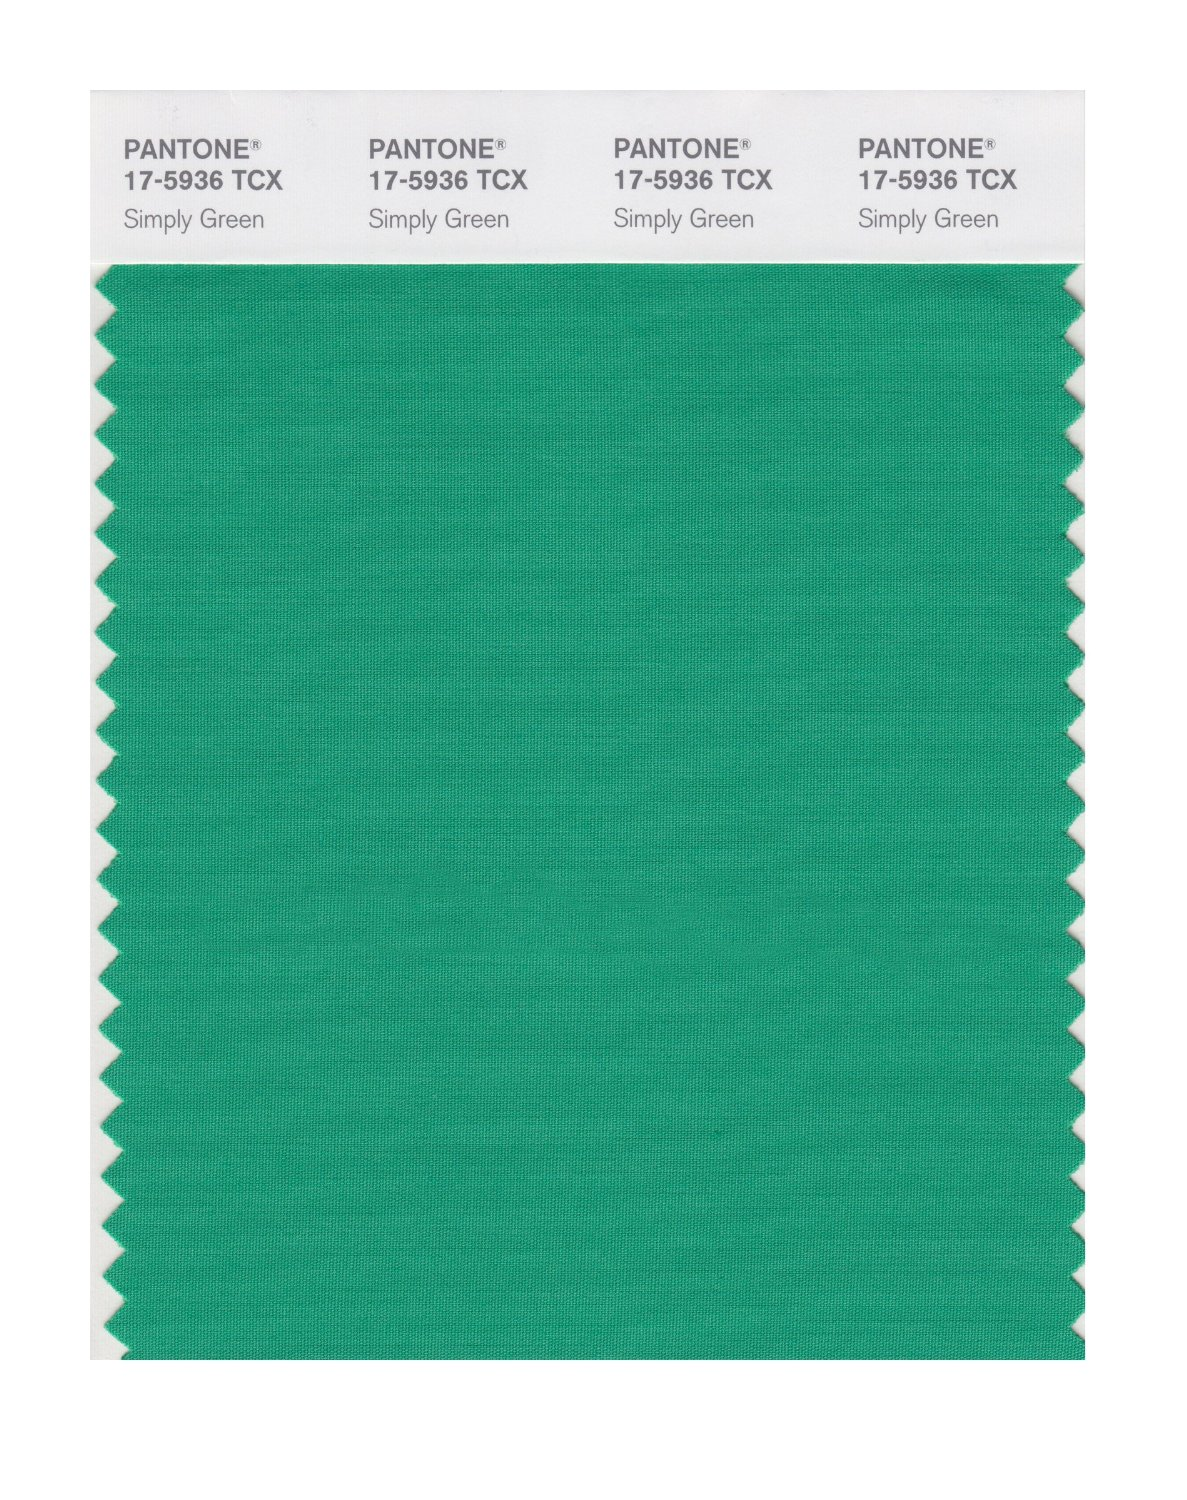 Pantone Smart Swatch 17-5936 Simply Green